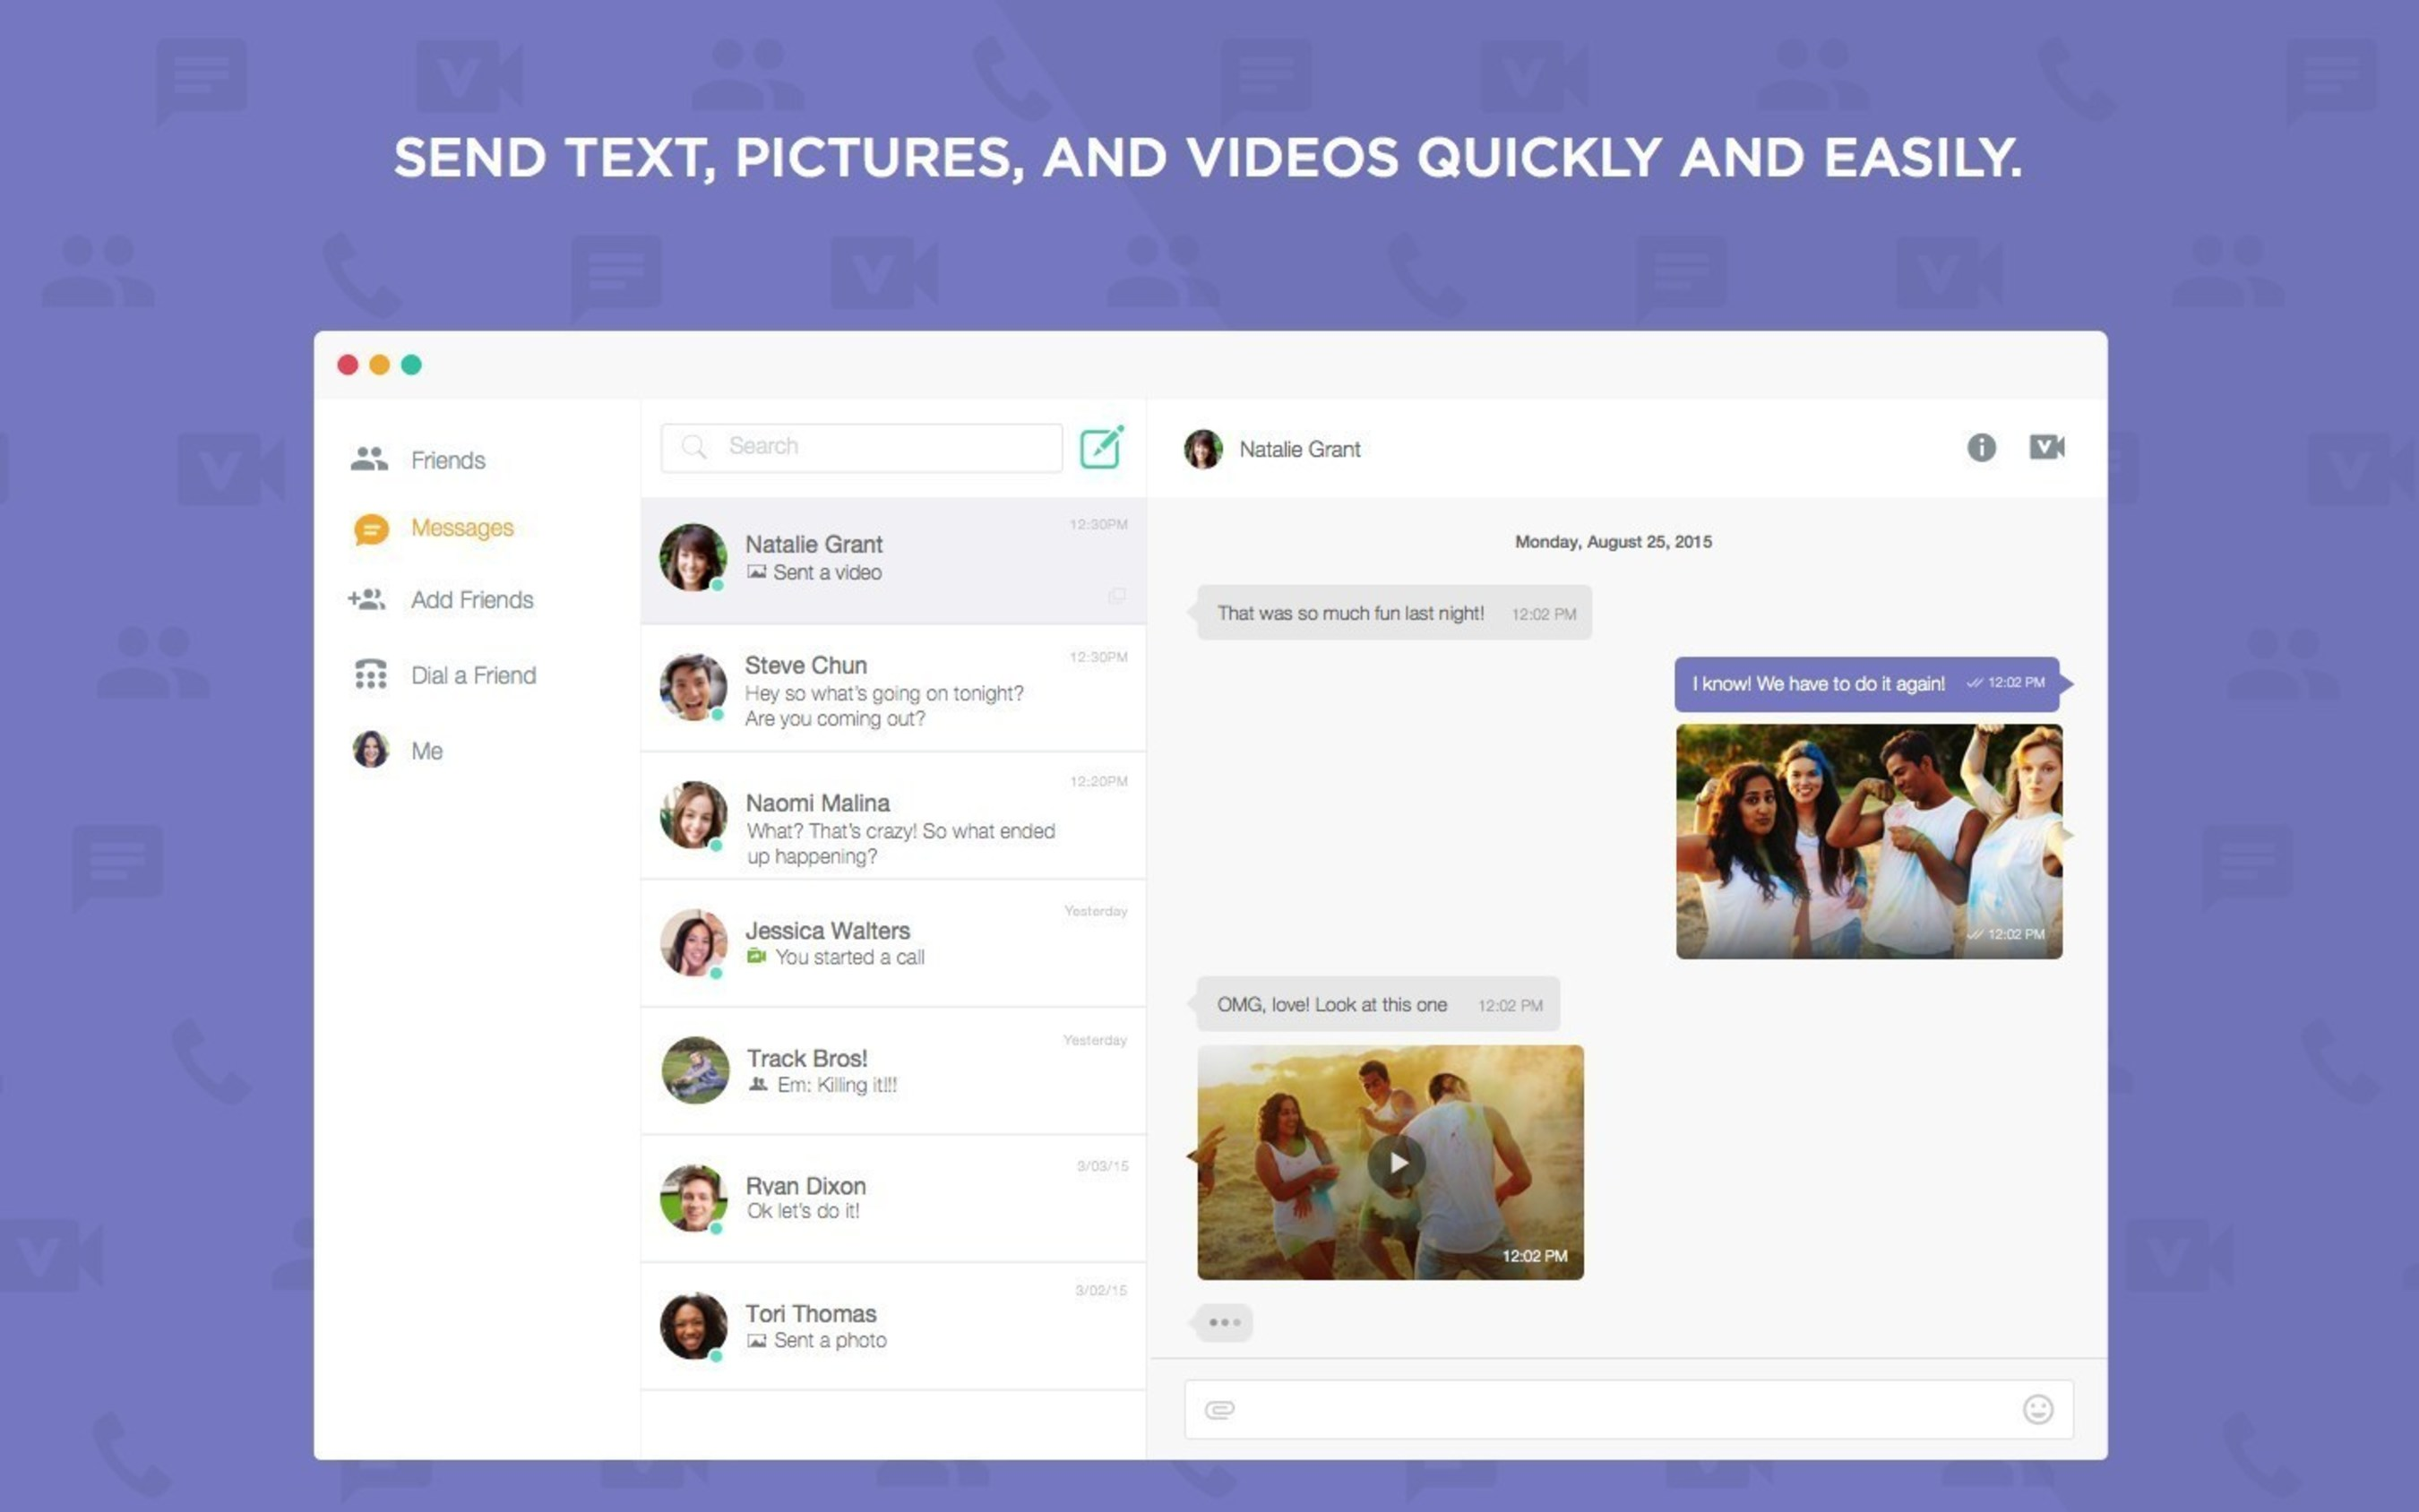 Stay in touch through text, picture, and video messages.